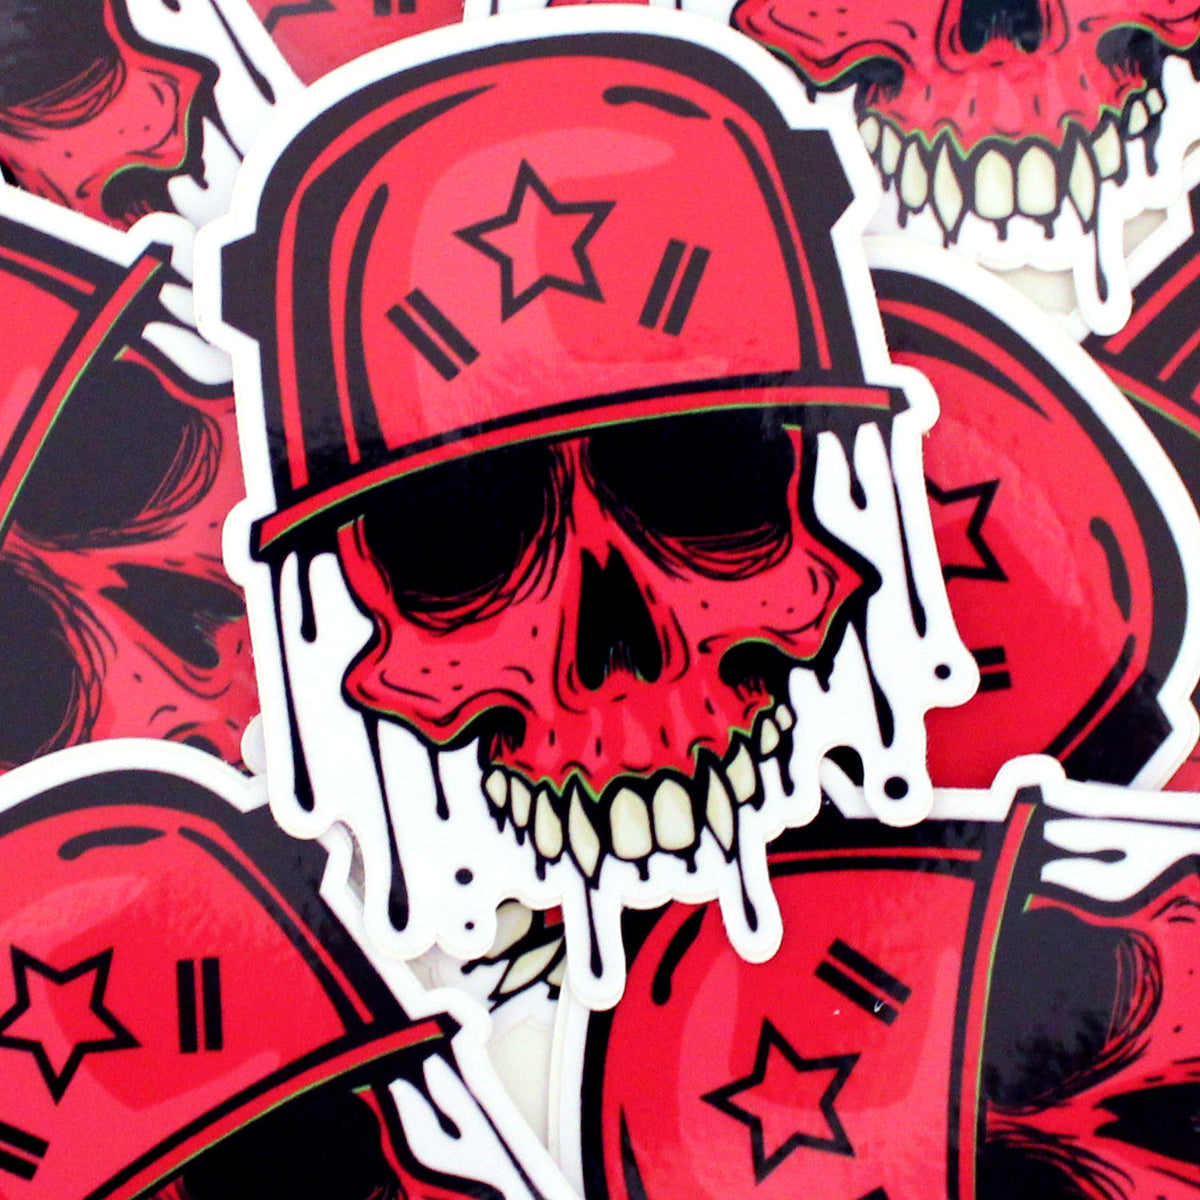 Heavy Metal Sticker